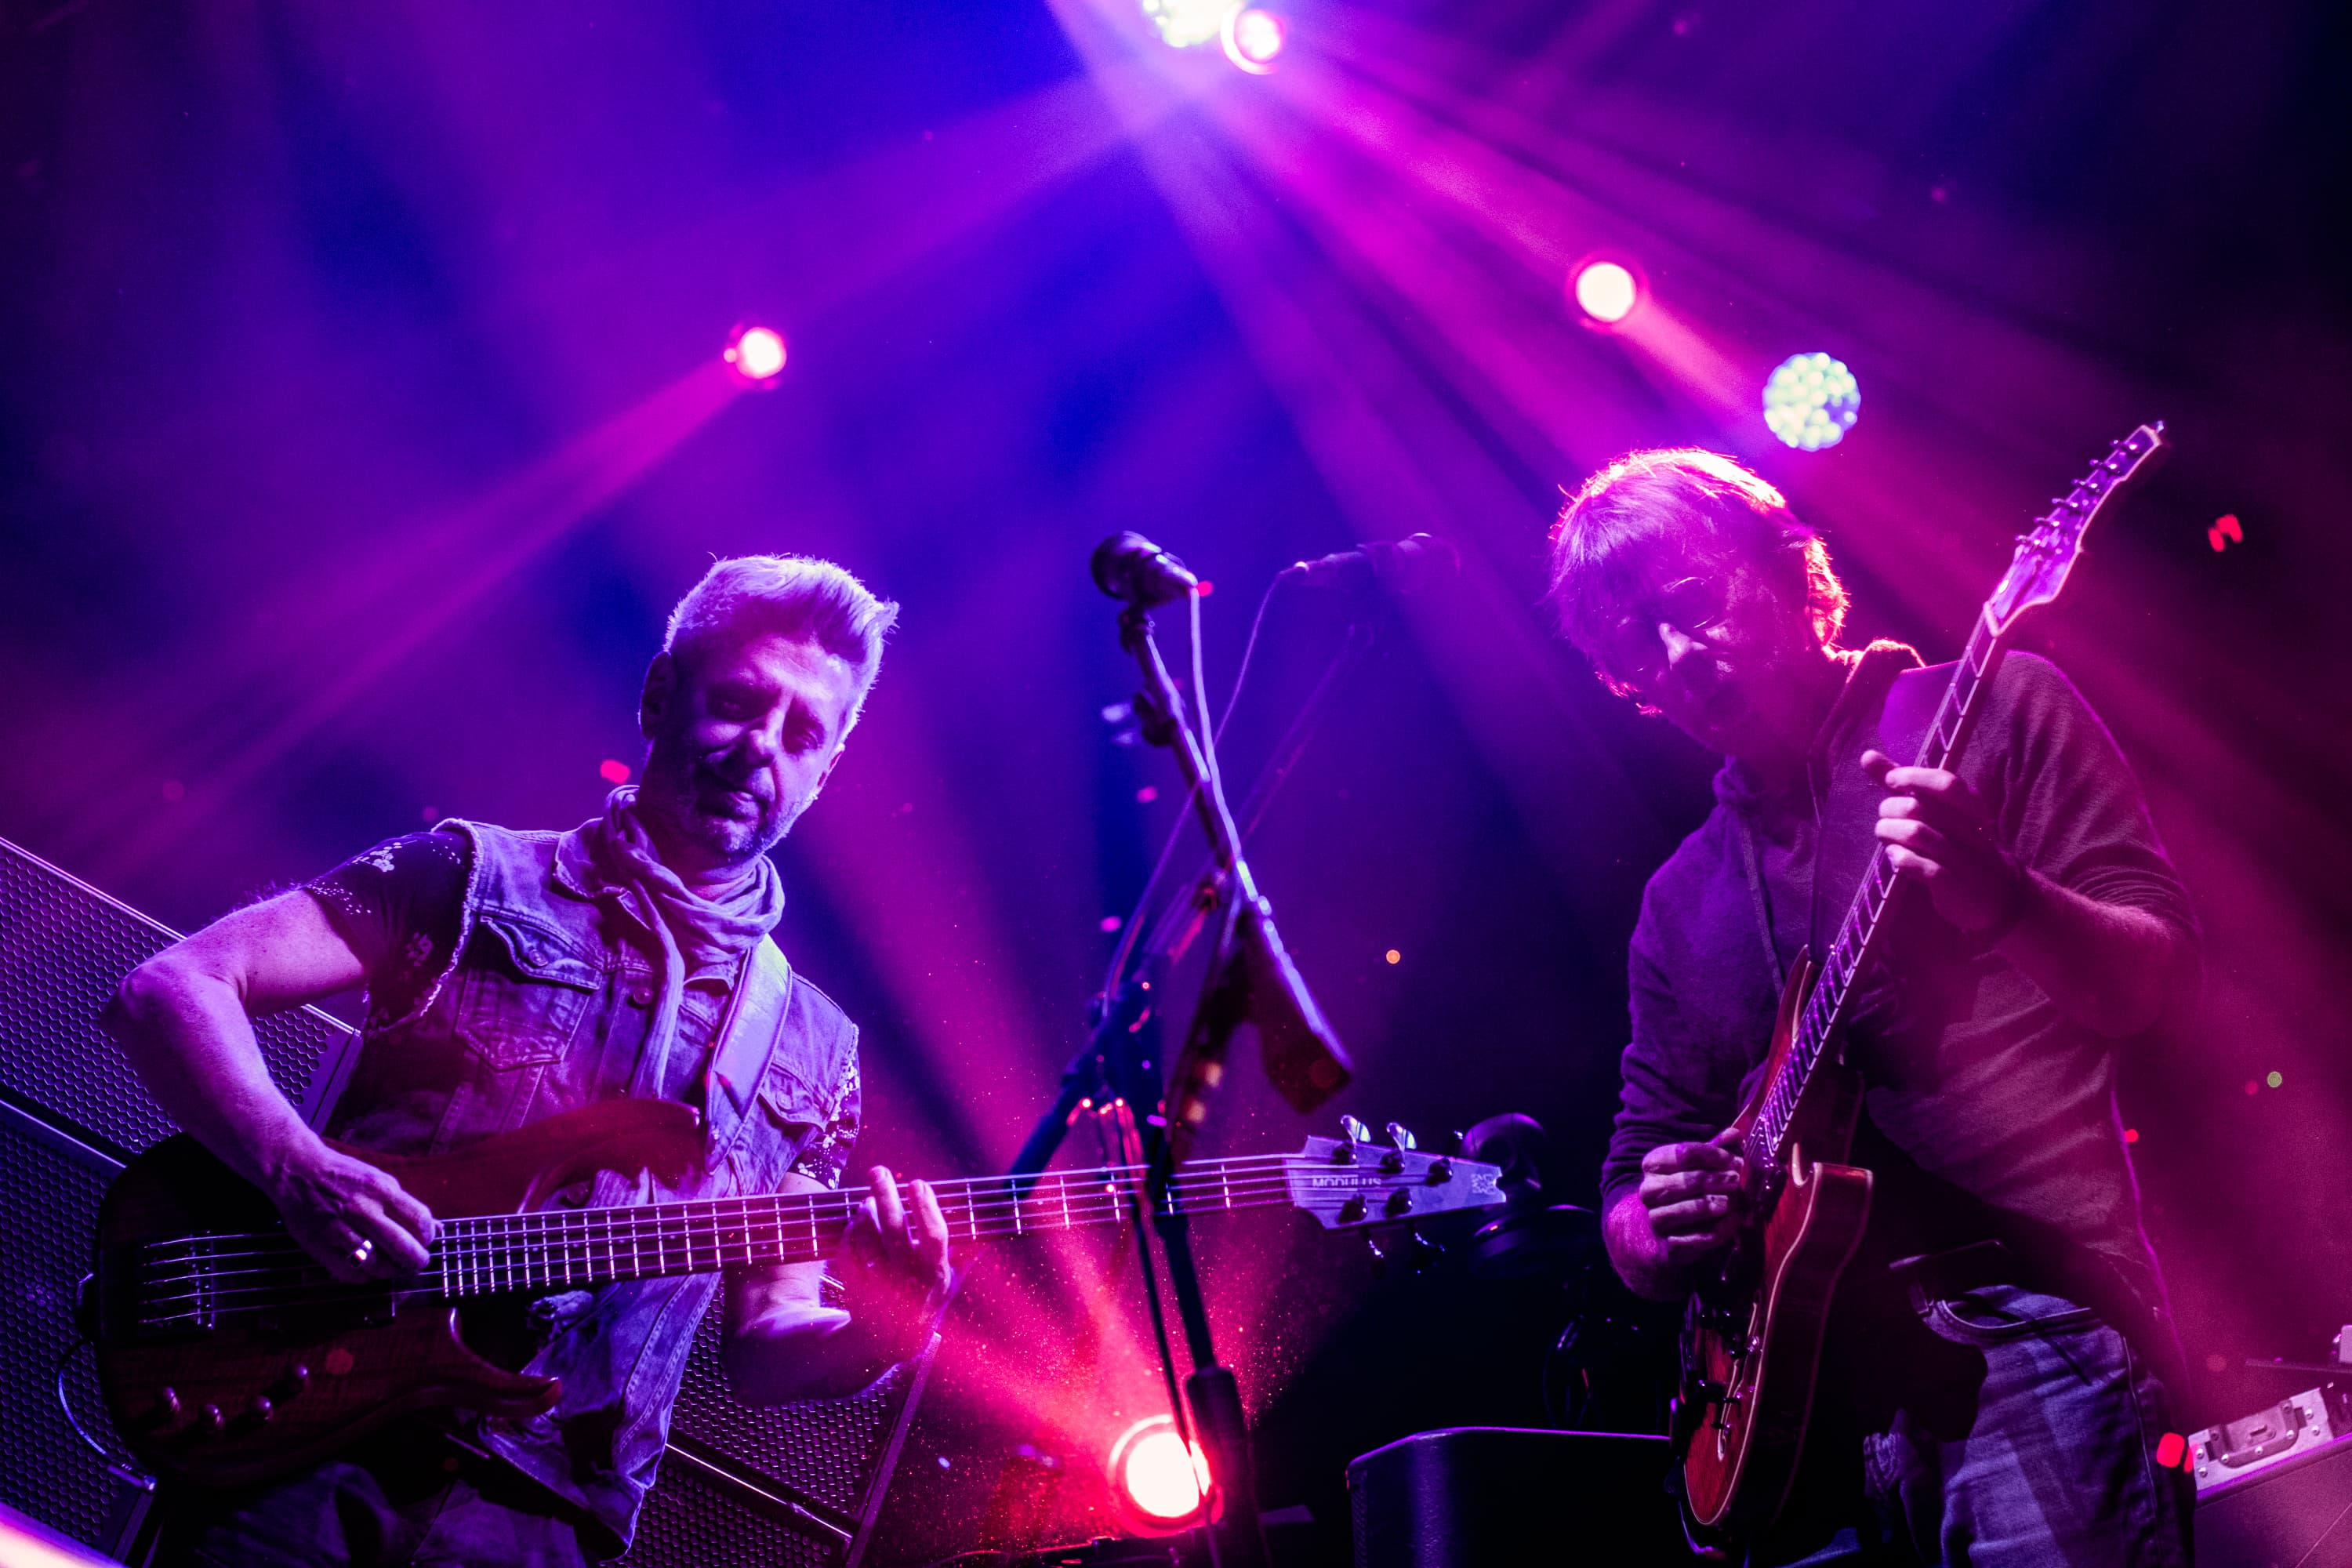 A double exposure of Mike Gordon and Trey Anastasio or Phish live at the Times Union Center in Albany, N.Y., on Oct. 17, 2018